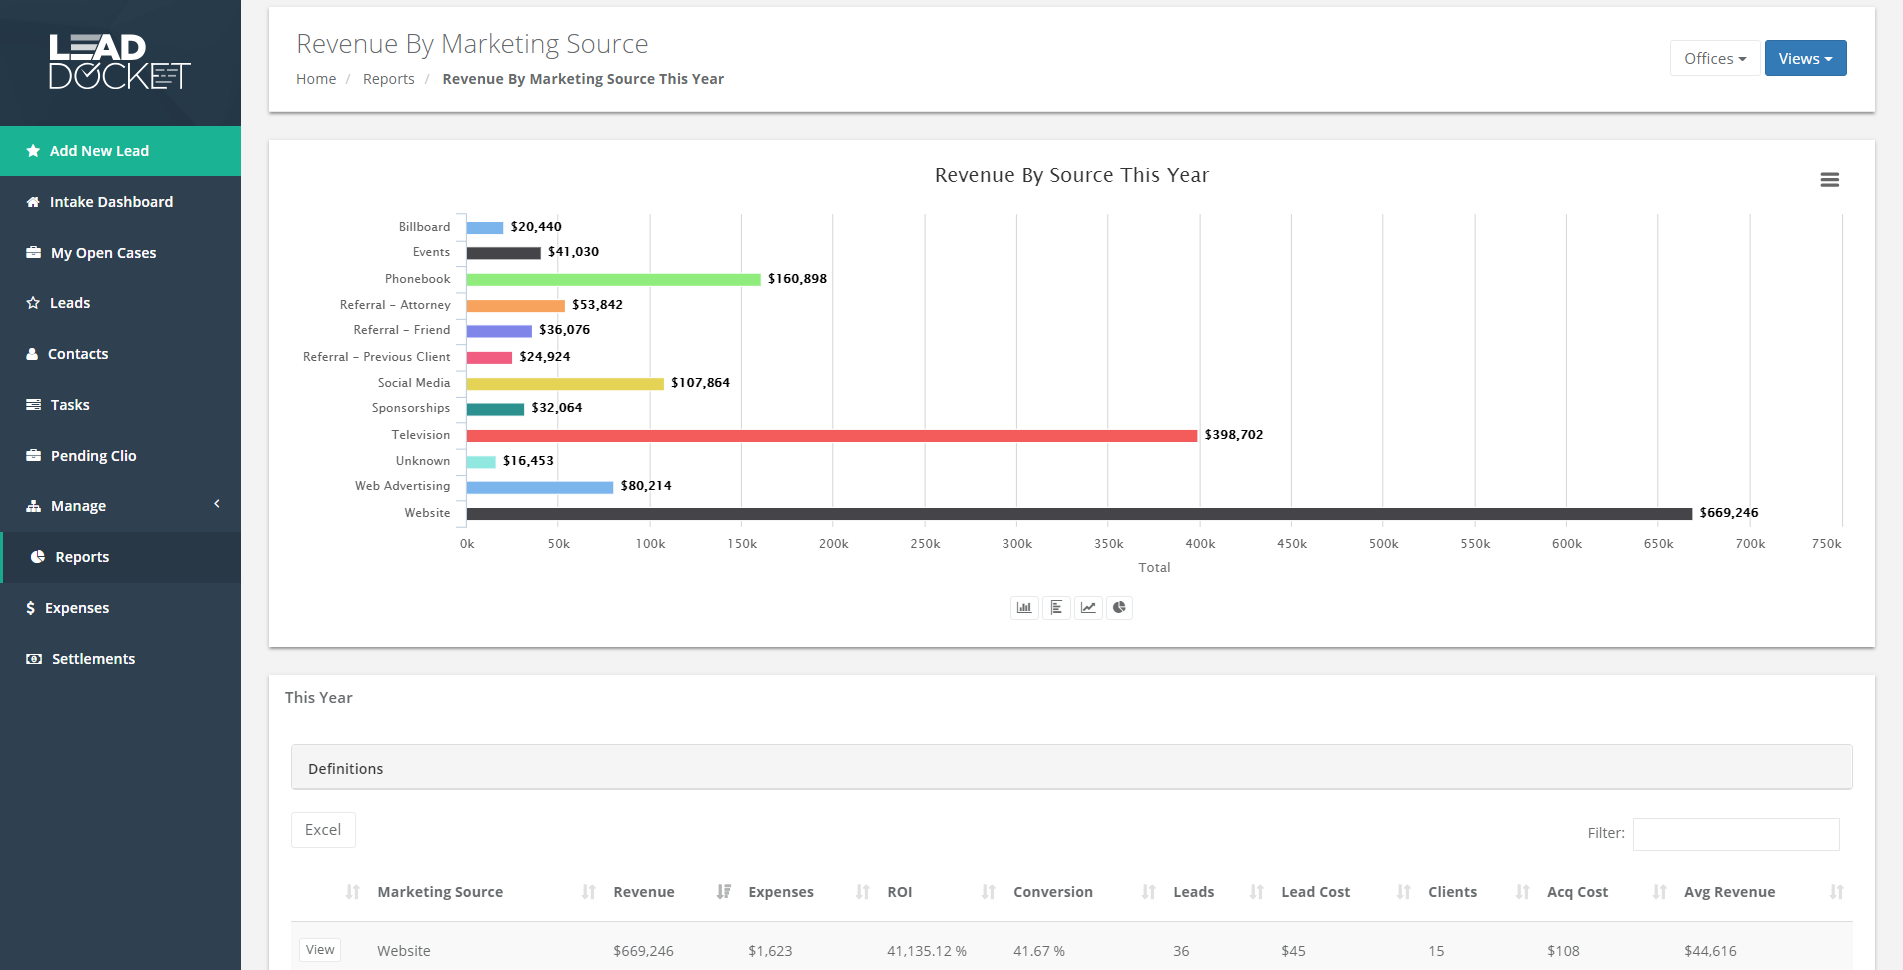 Lead Docket Software - Track your ROI on each marketing channel with Lead Docket's robust reporting and analytics features.